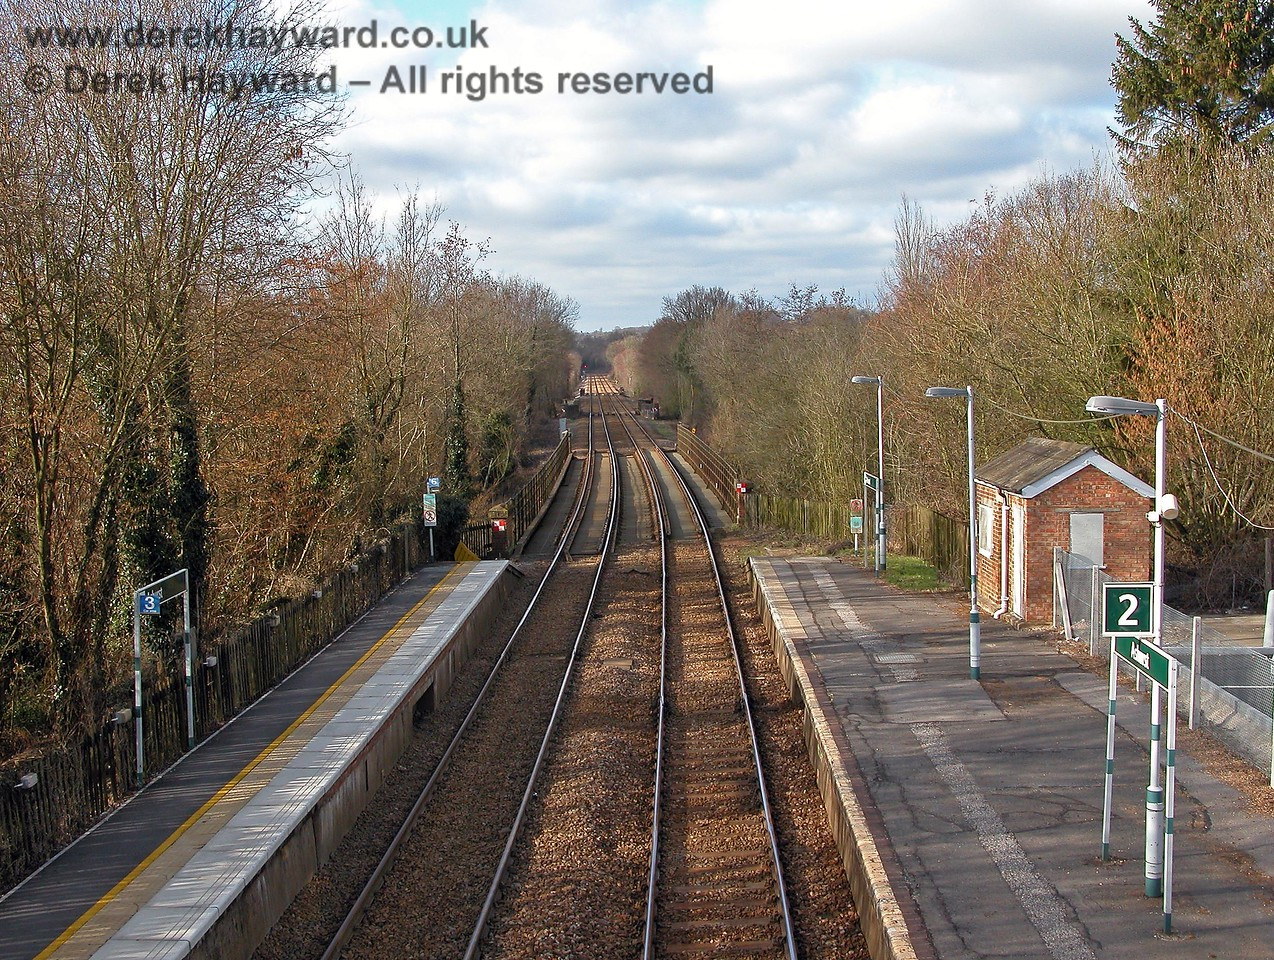 A later picture taken in 2006 shows that the Southern colour scheme and signs have appeared.  The brick shed on the right is the only part of the original station buildings that survives. The area on the right was originally occupied by a station house, booking hall, canopy and platform lever frame for the points and signals. 19.03.2006